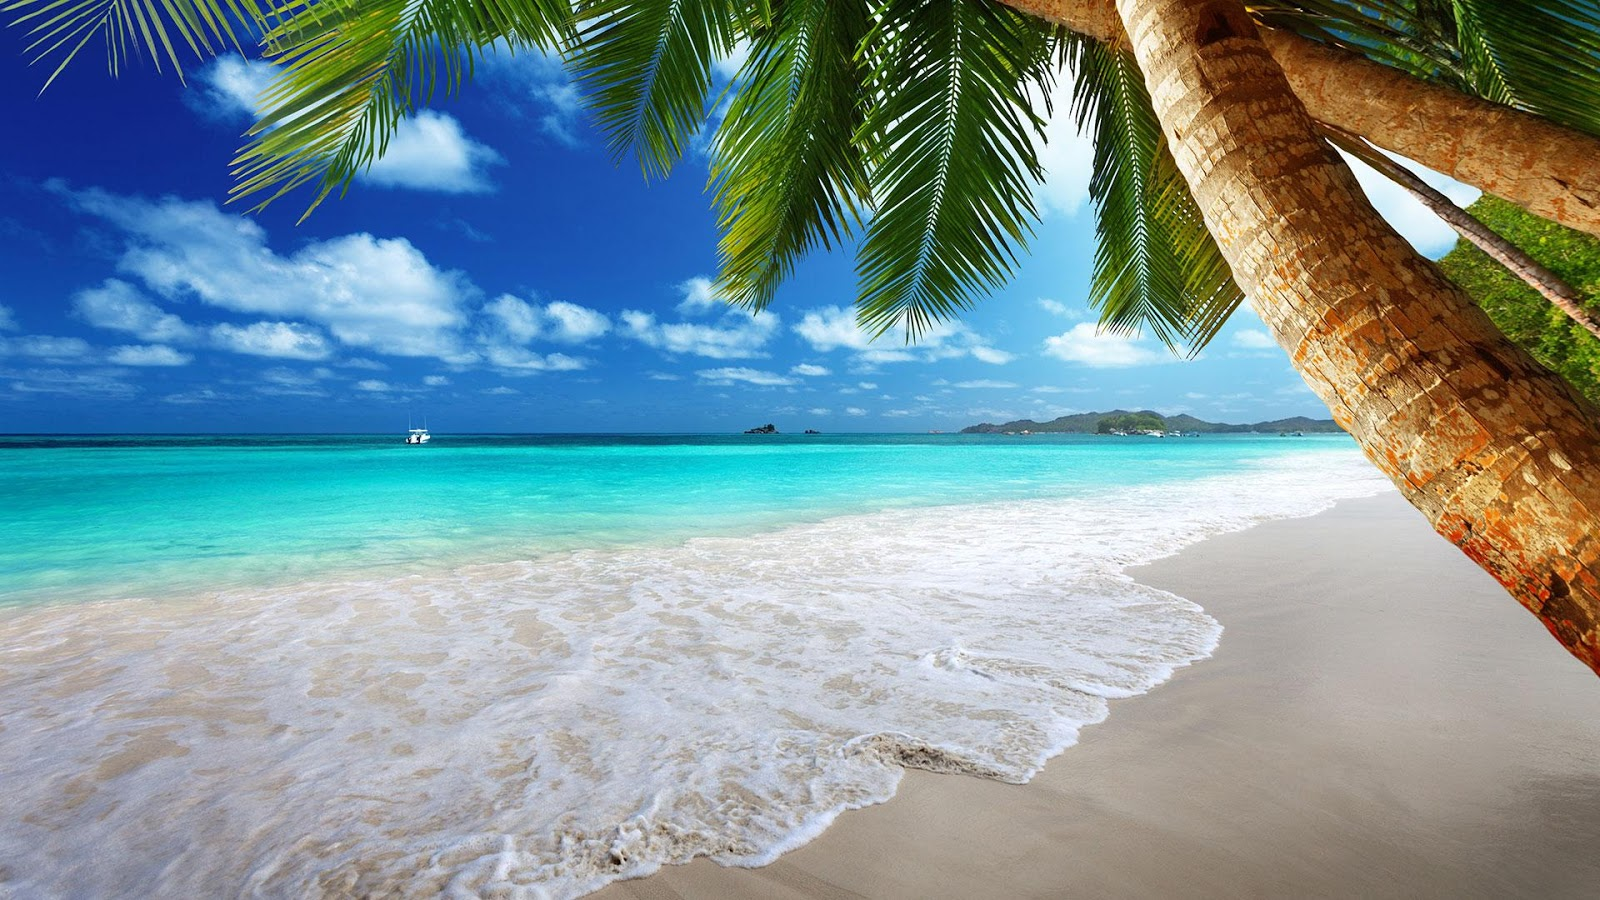 Beach Live Wallpaper   Android Apps on Google Play 1600x900